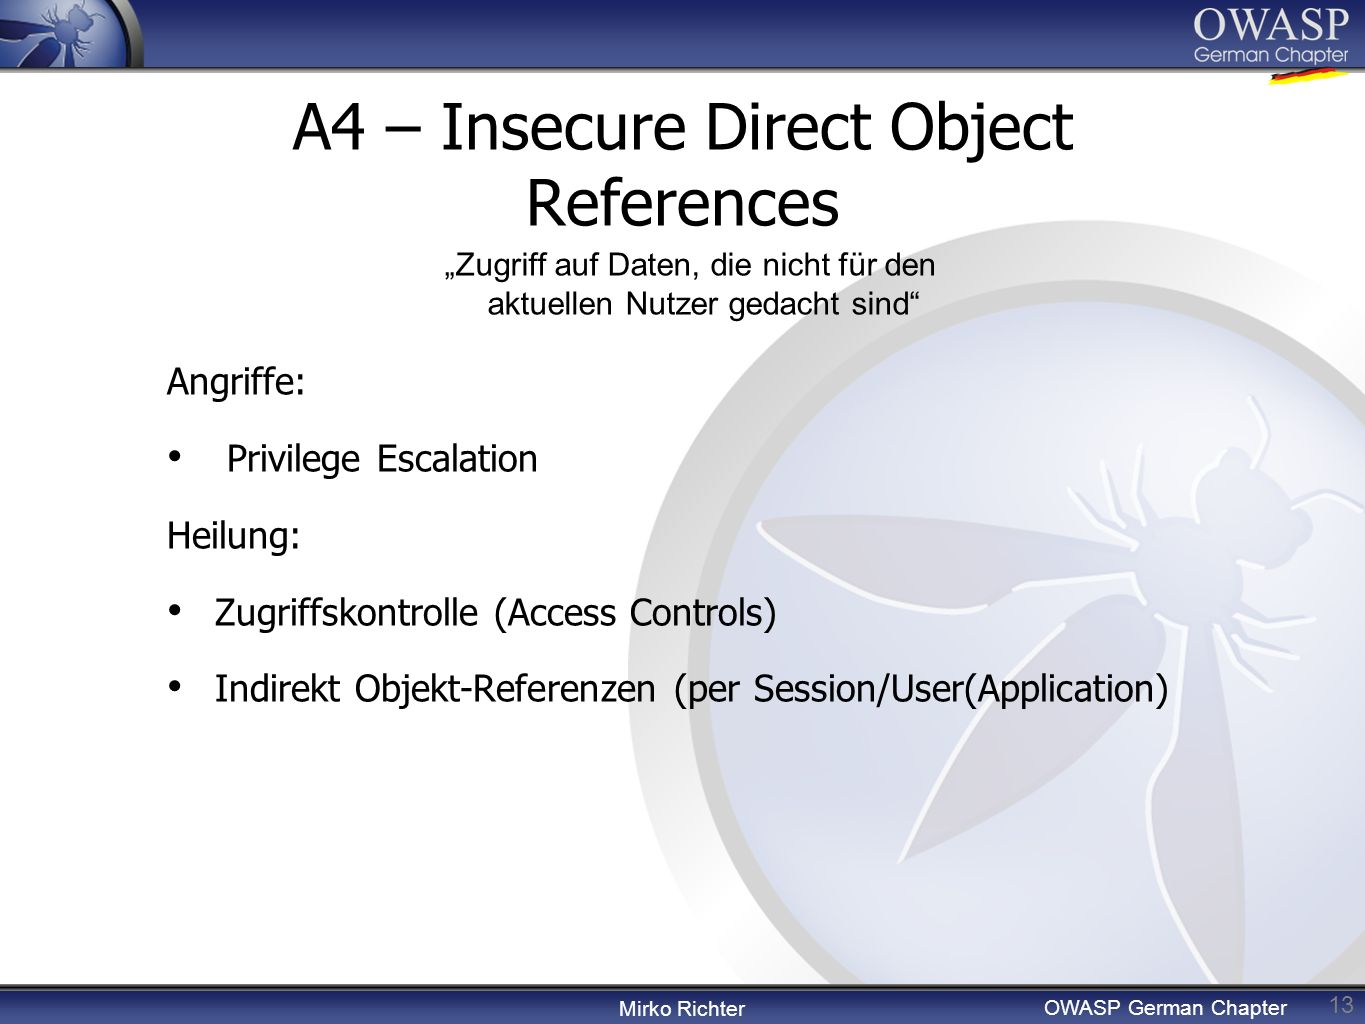 Mirko Richter OWASP German Chapter A4 – Insecure Direct Object References 13 Angriffe: Privilege Escalation Heilung: Zugriffskontrolle (Access Control